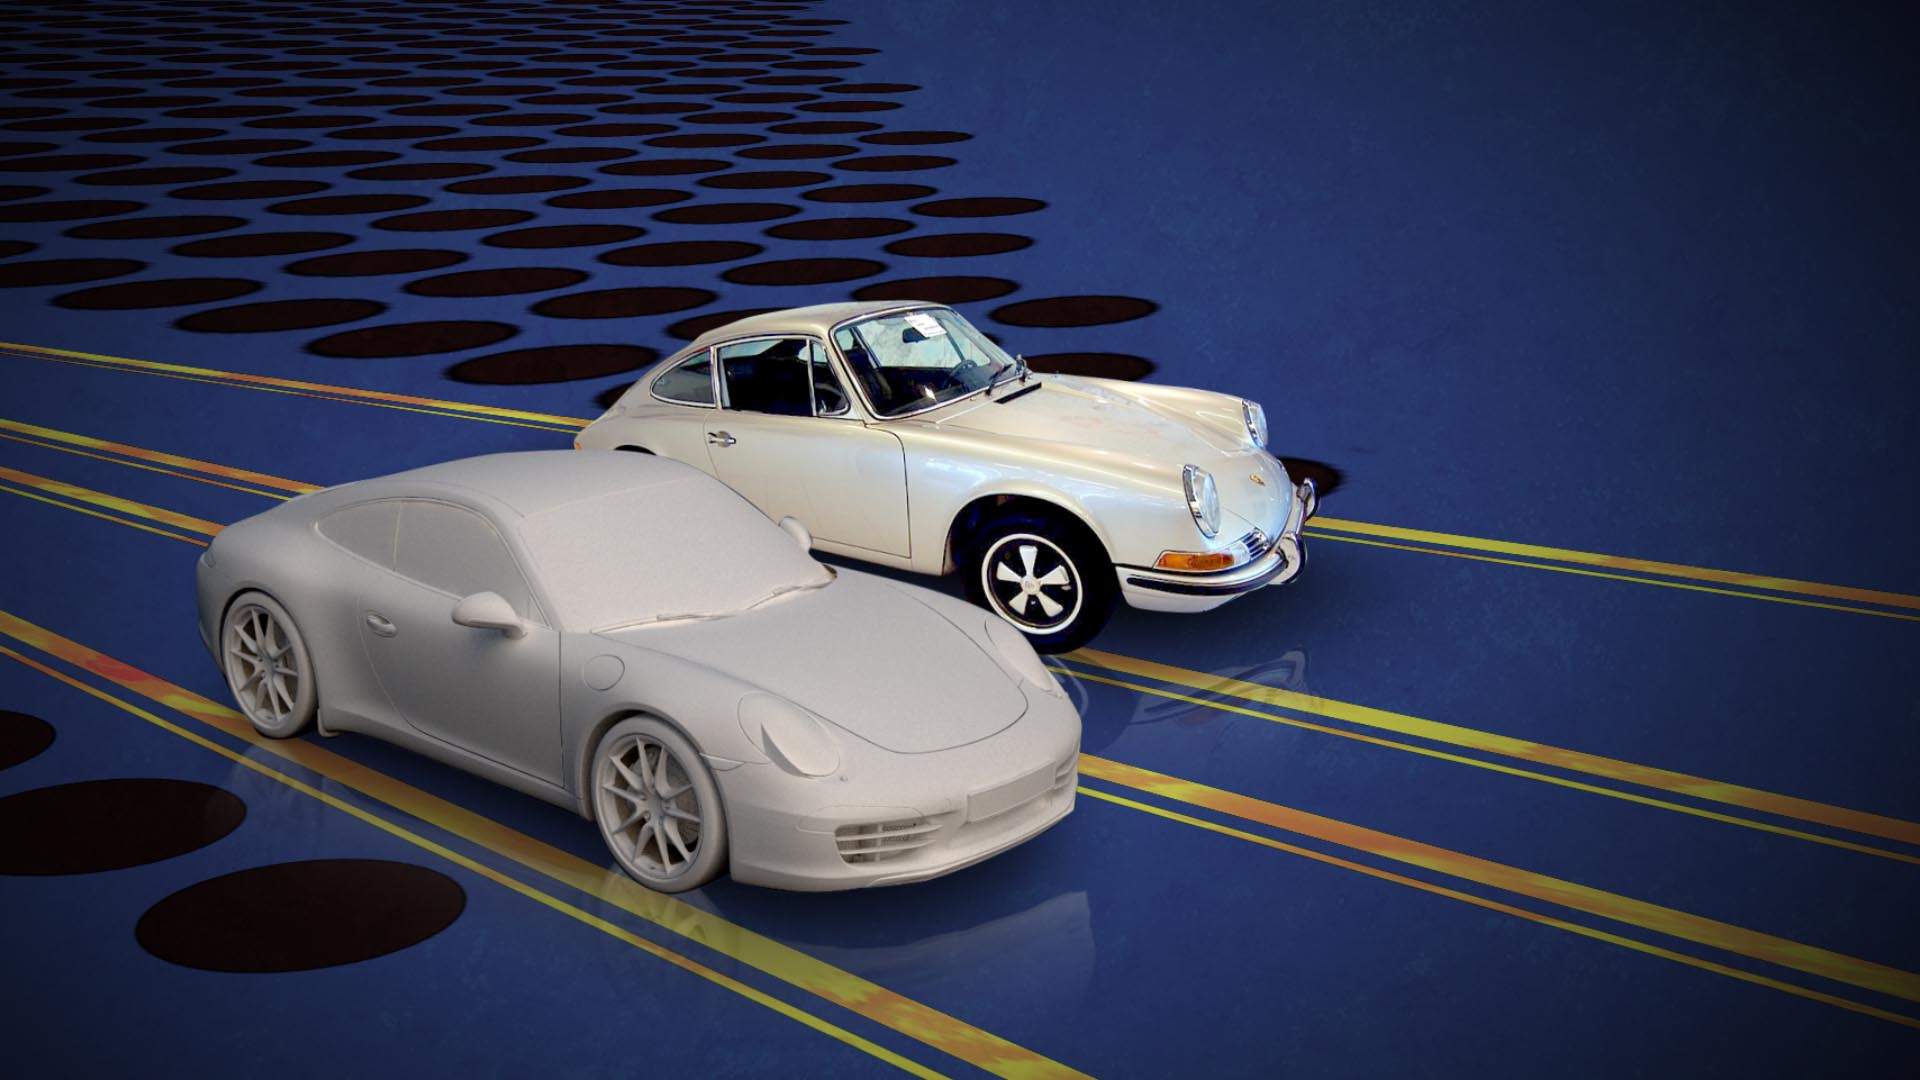 A 3D model of a Porsche next to a real Porsche from the 60's